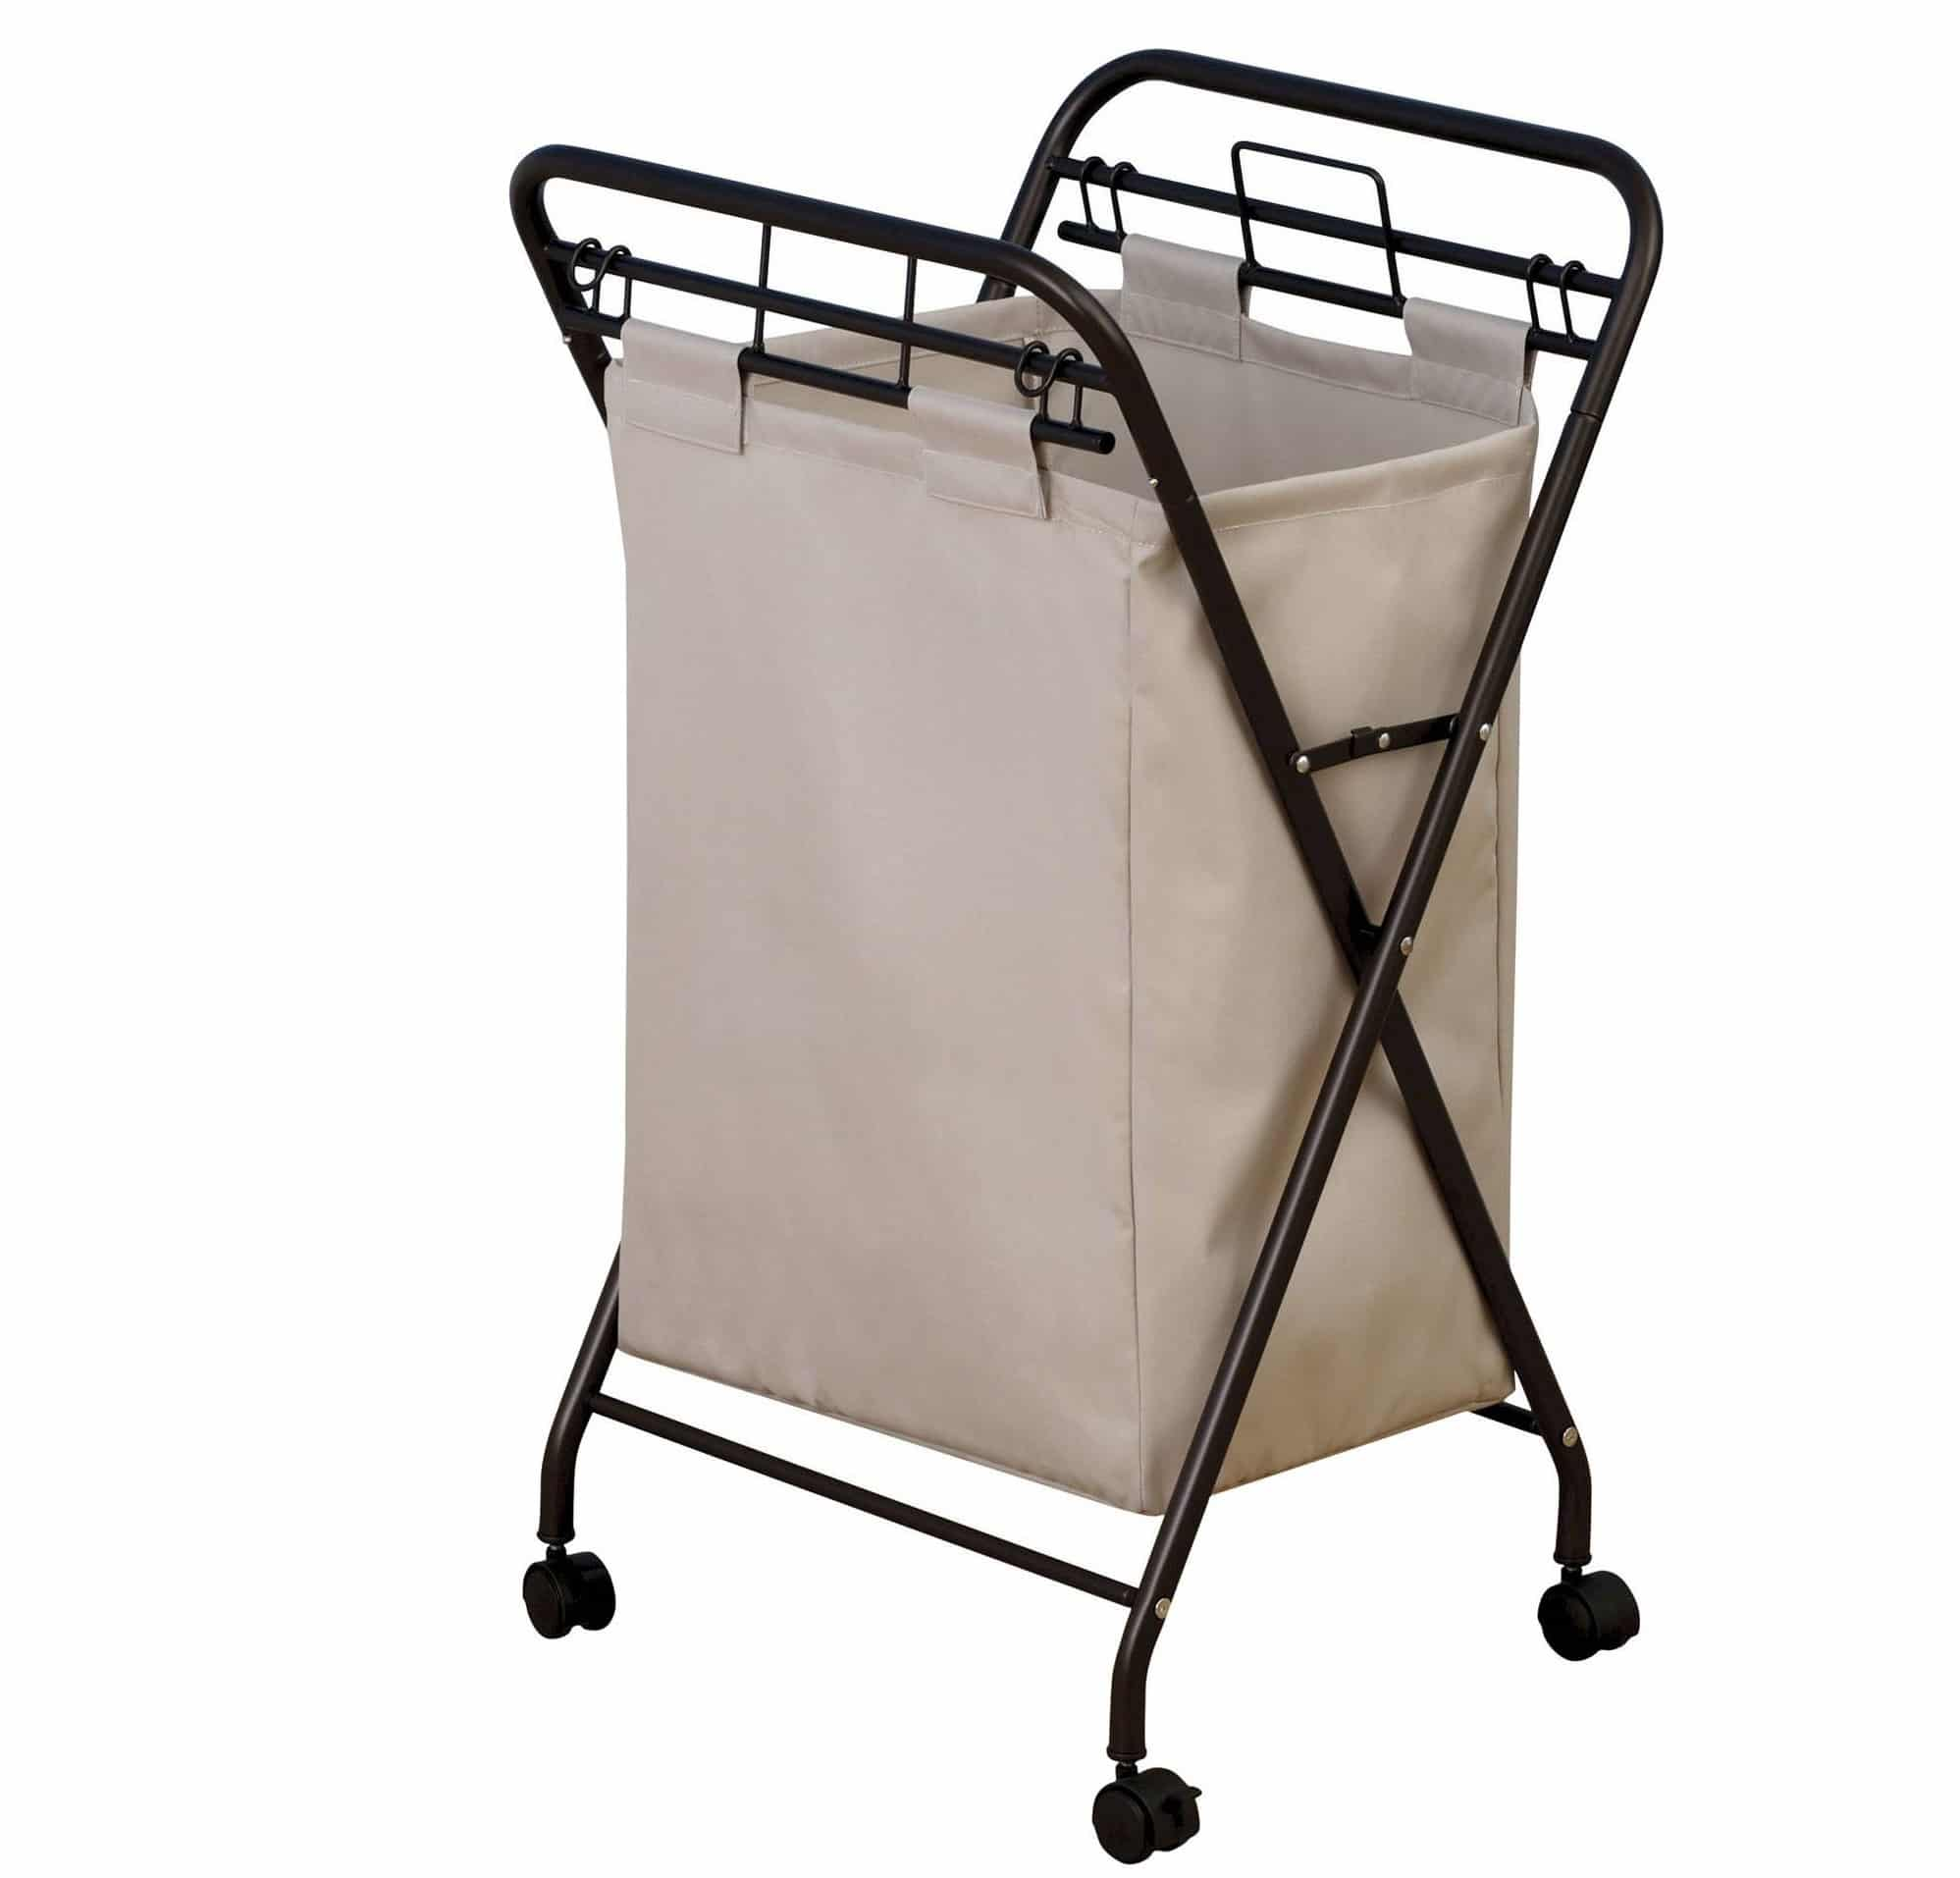 1_laundry hamper